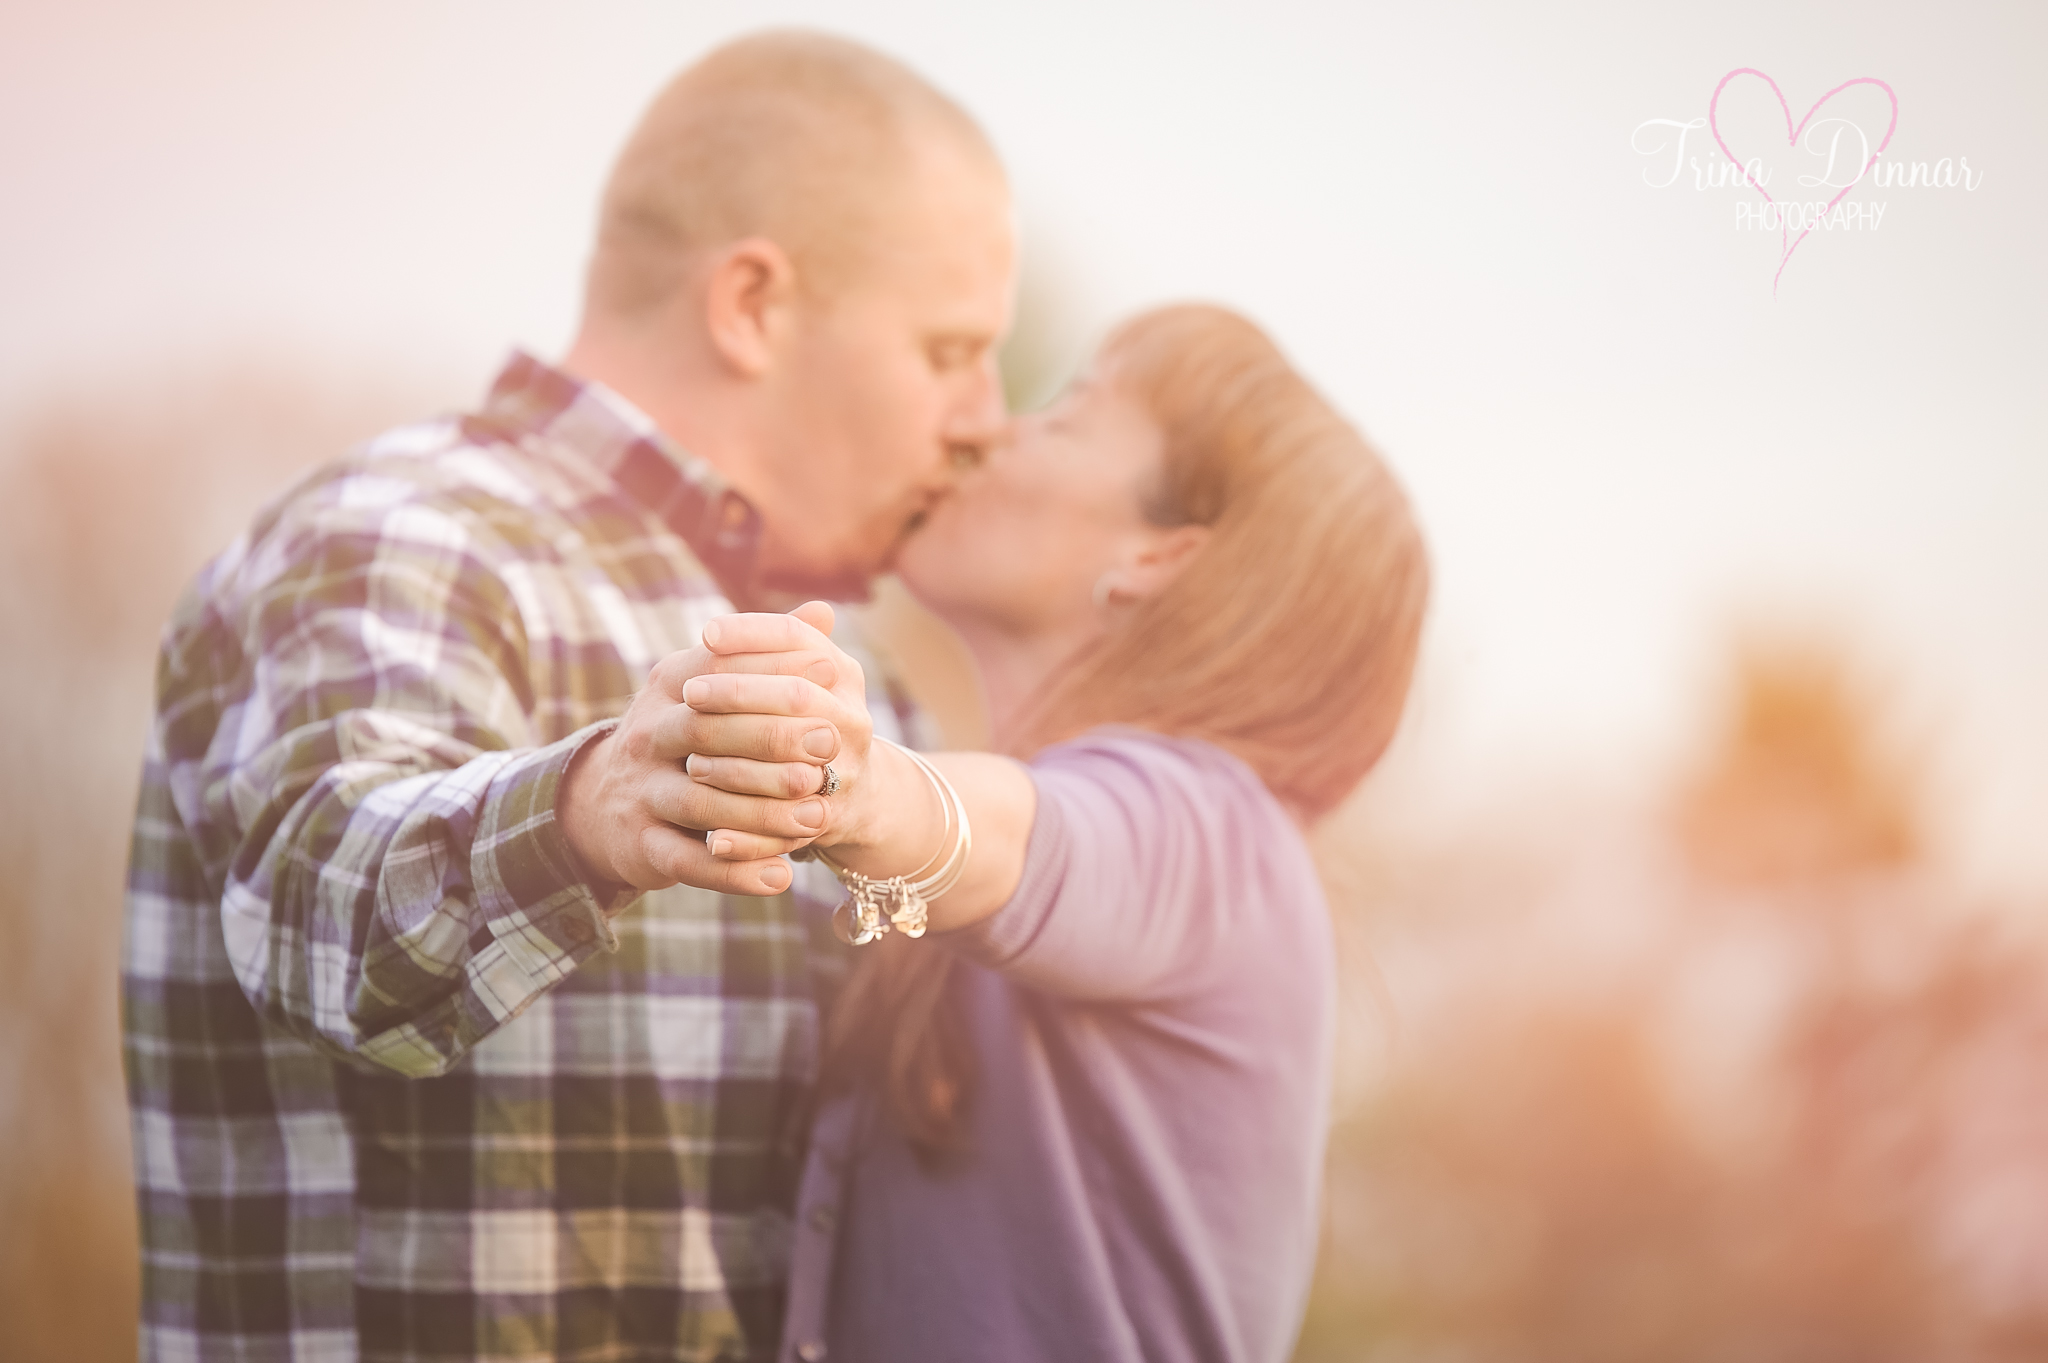 I photographed their engagement session as a Southern Maine wedding photographer